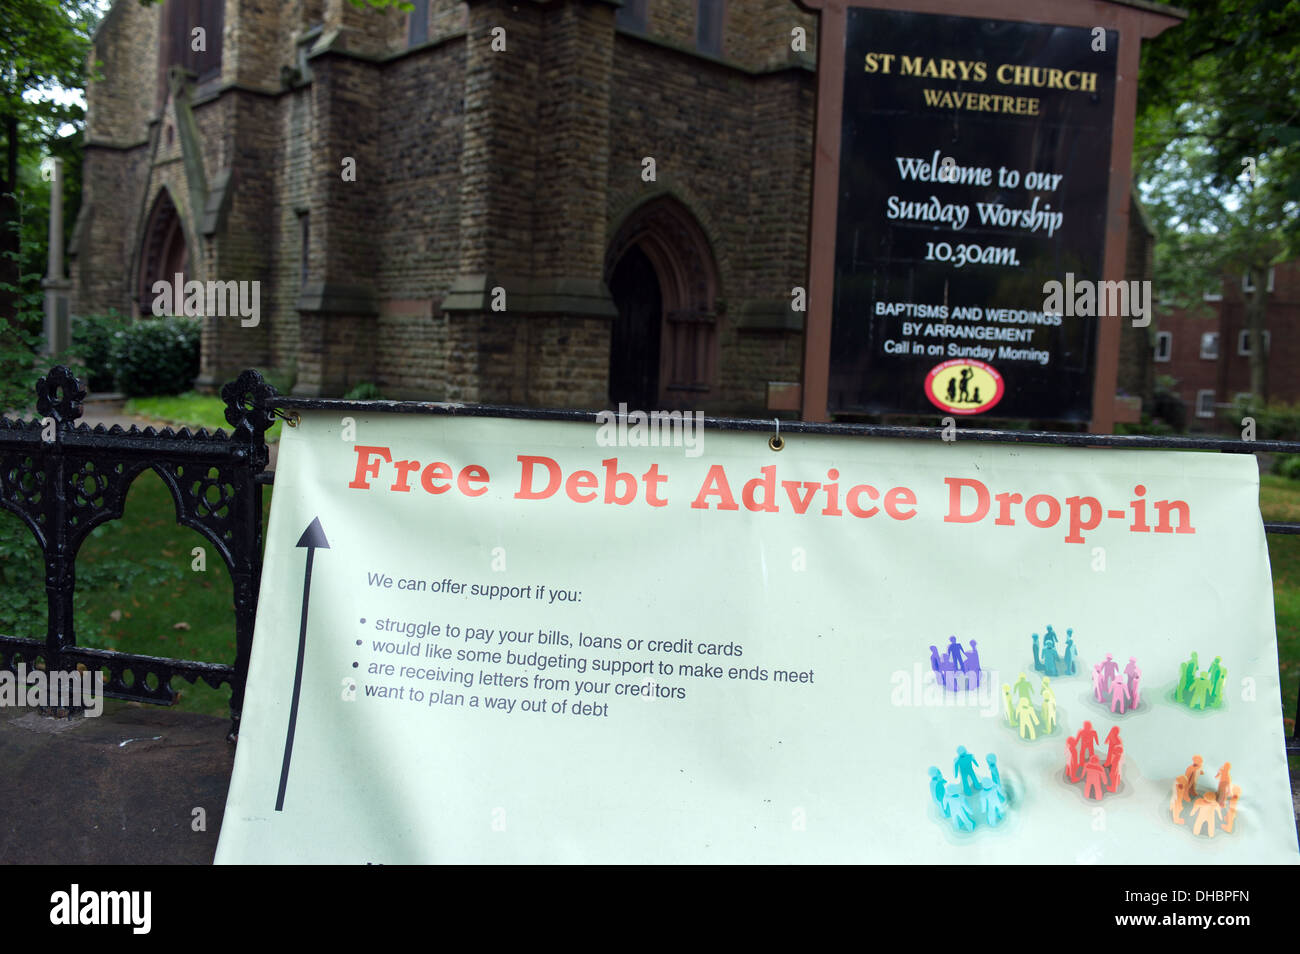 Free debt advice sign outside a church in Wavertree, Liverpool, England, UK. 2013. - Stock Image